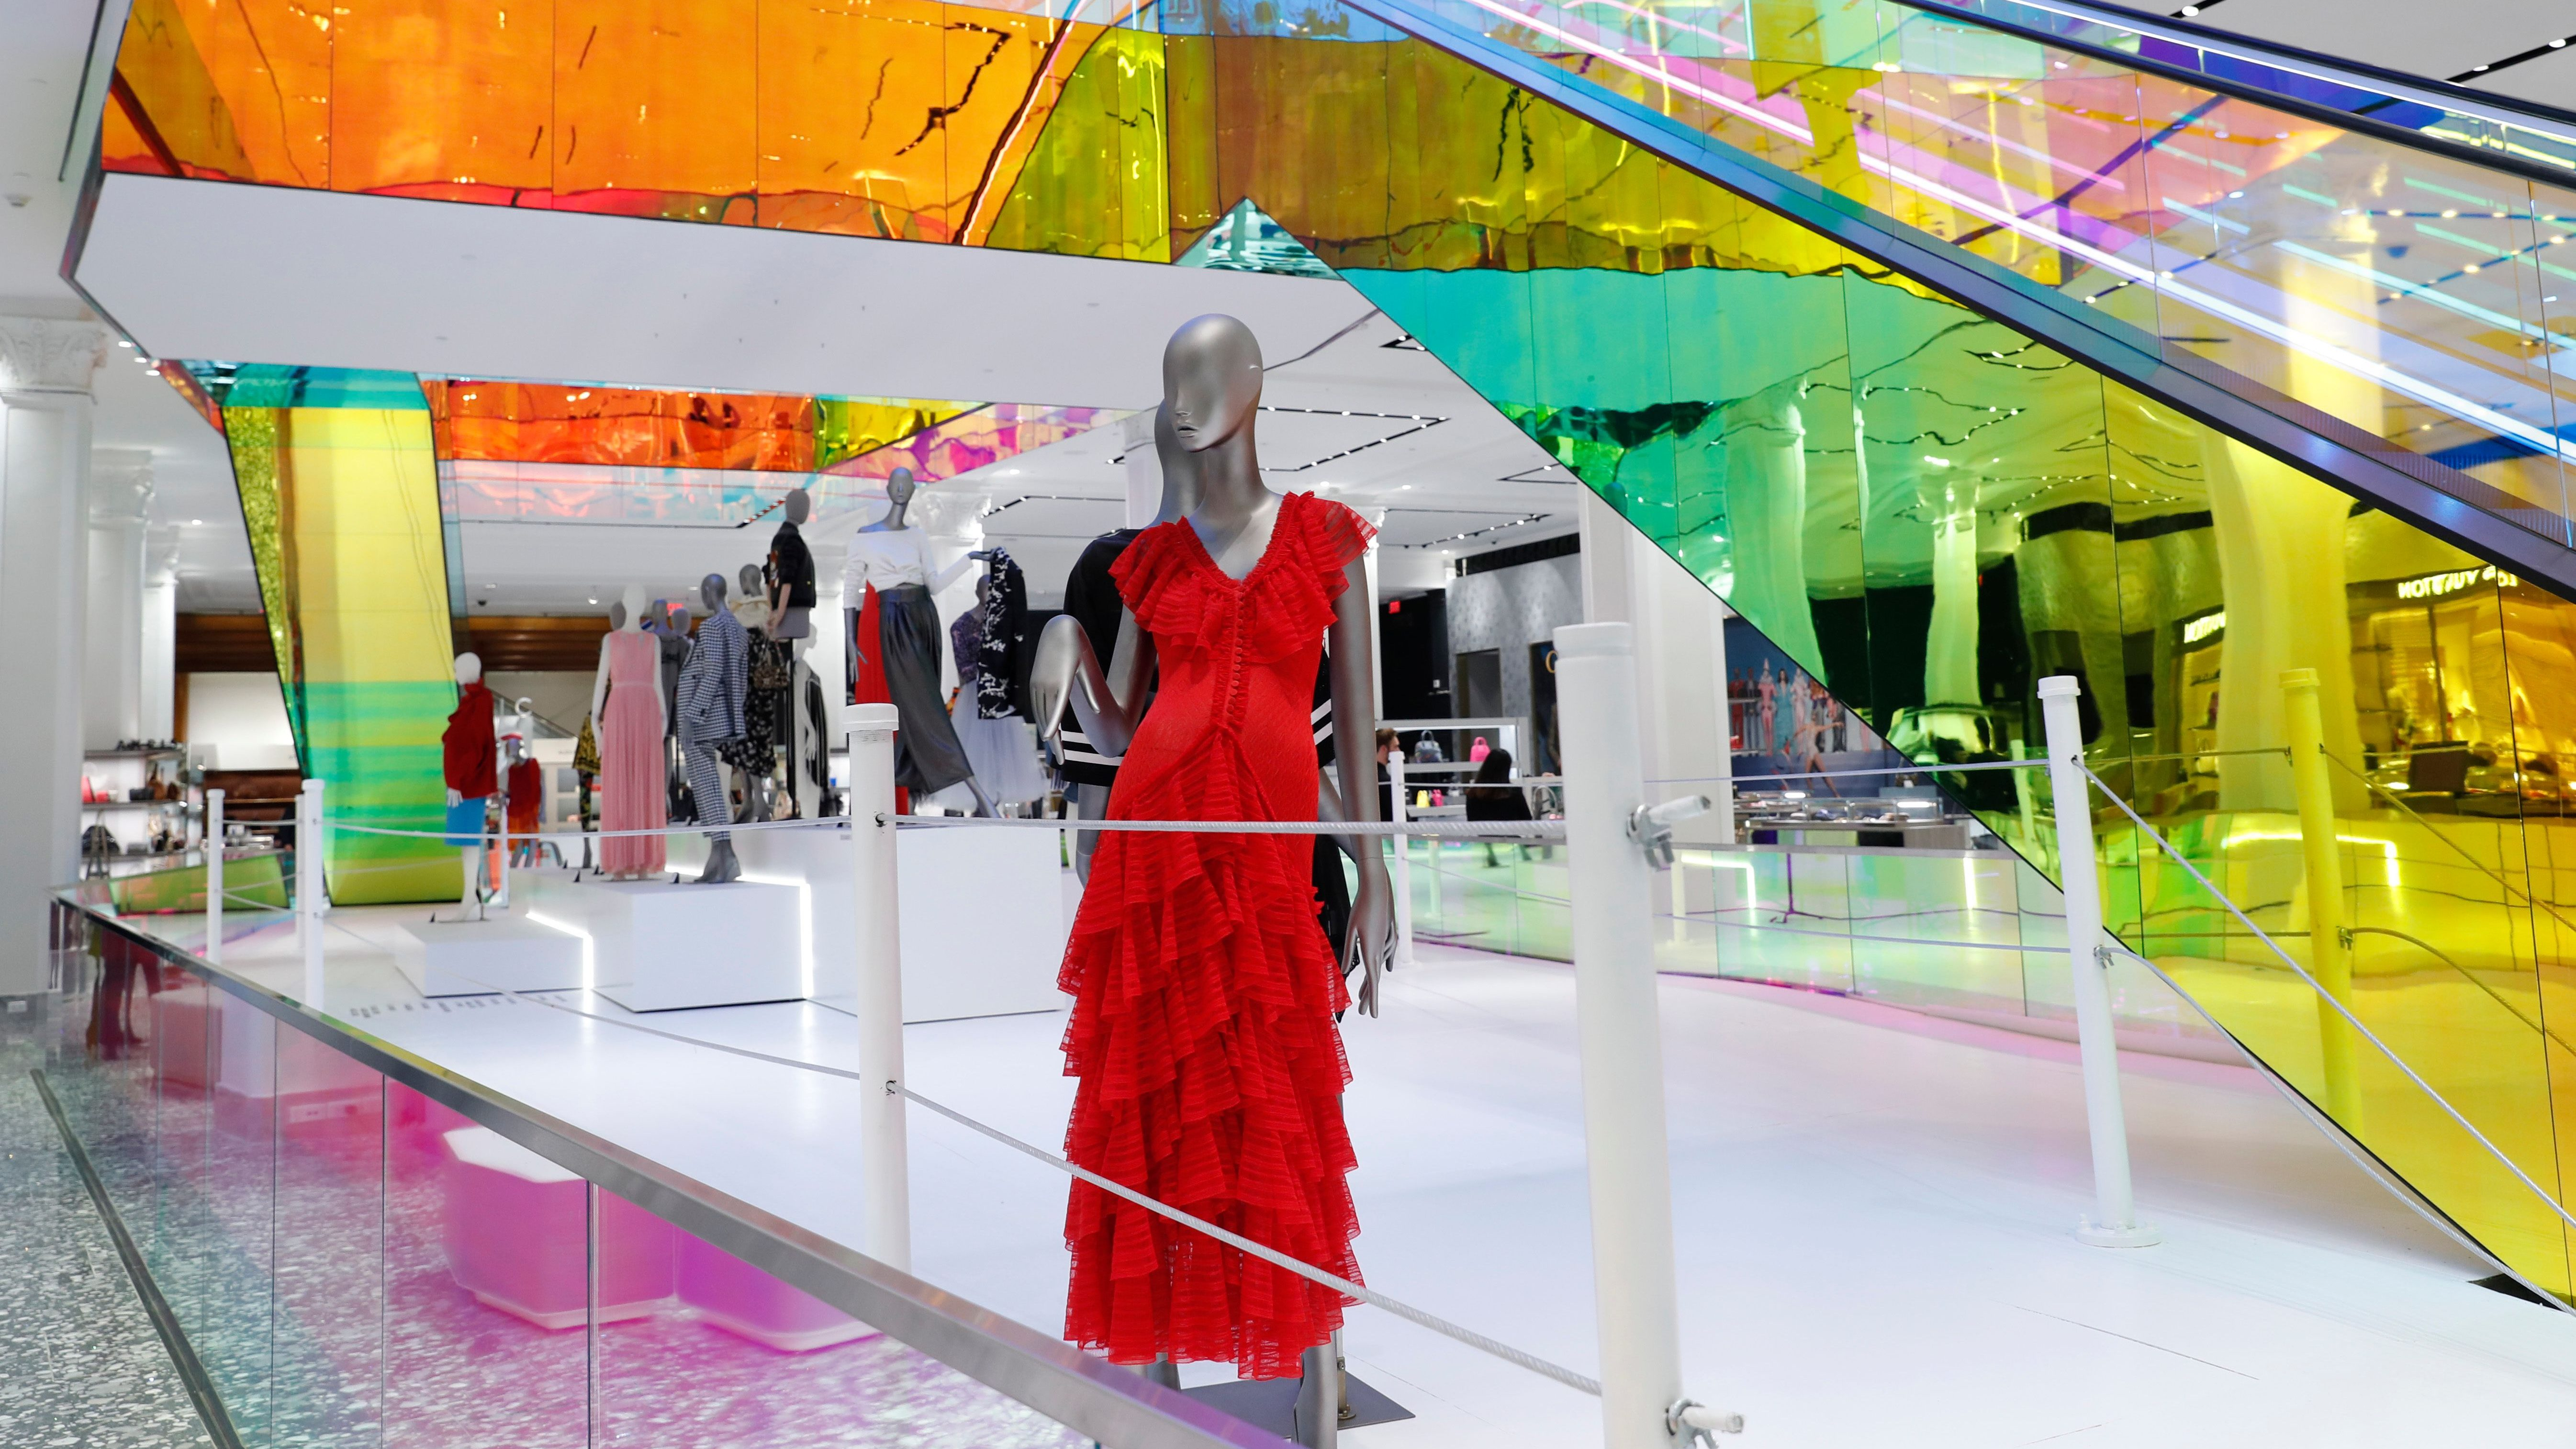 A mannequin wears a red dress inside the Saks Fifth Avenue's flagship midtown Manhattan store, Wednesday, Feb. 20, 2019, in New York. (AP Photo/Kathy Willens)